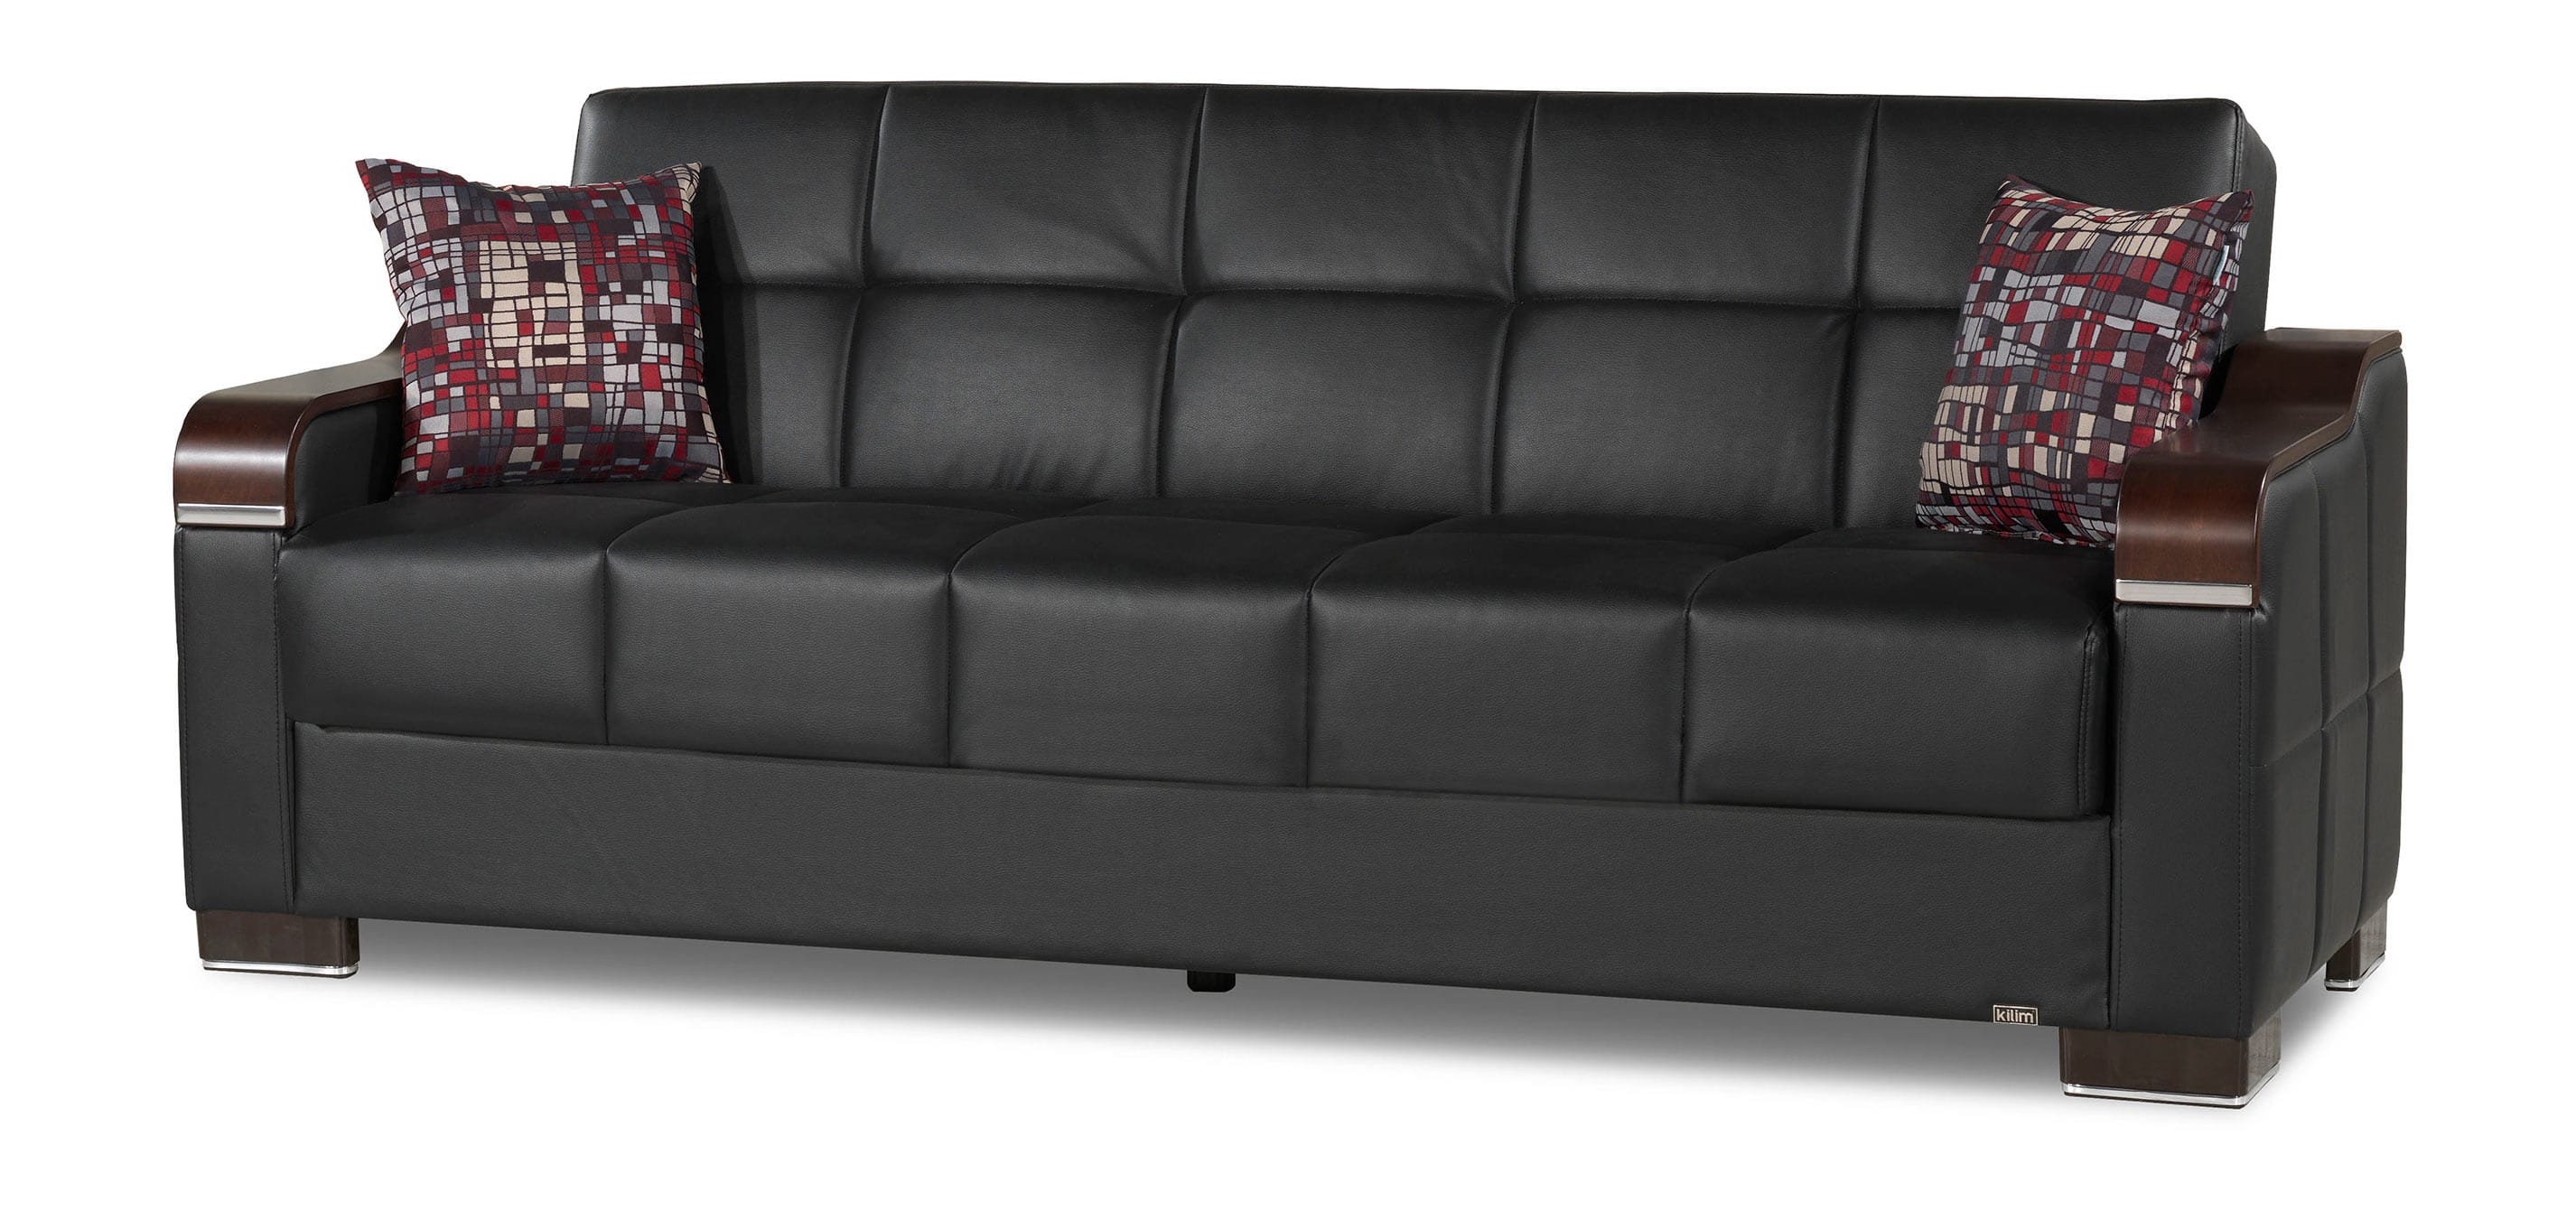 Uptown Black PU Leather Convertible Sofa by Casamode